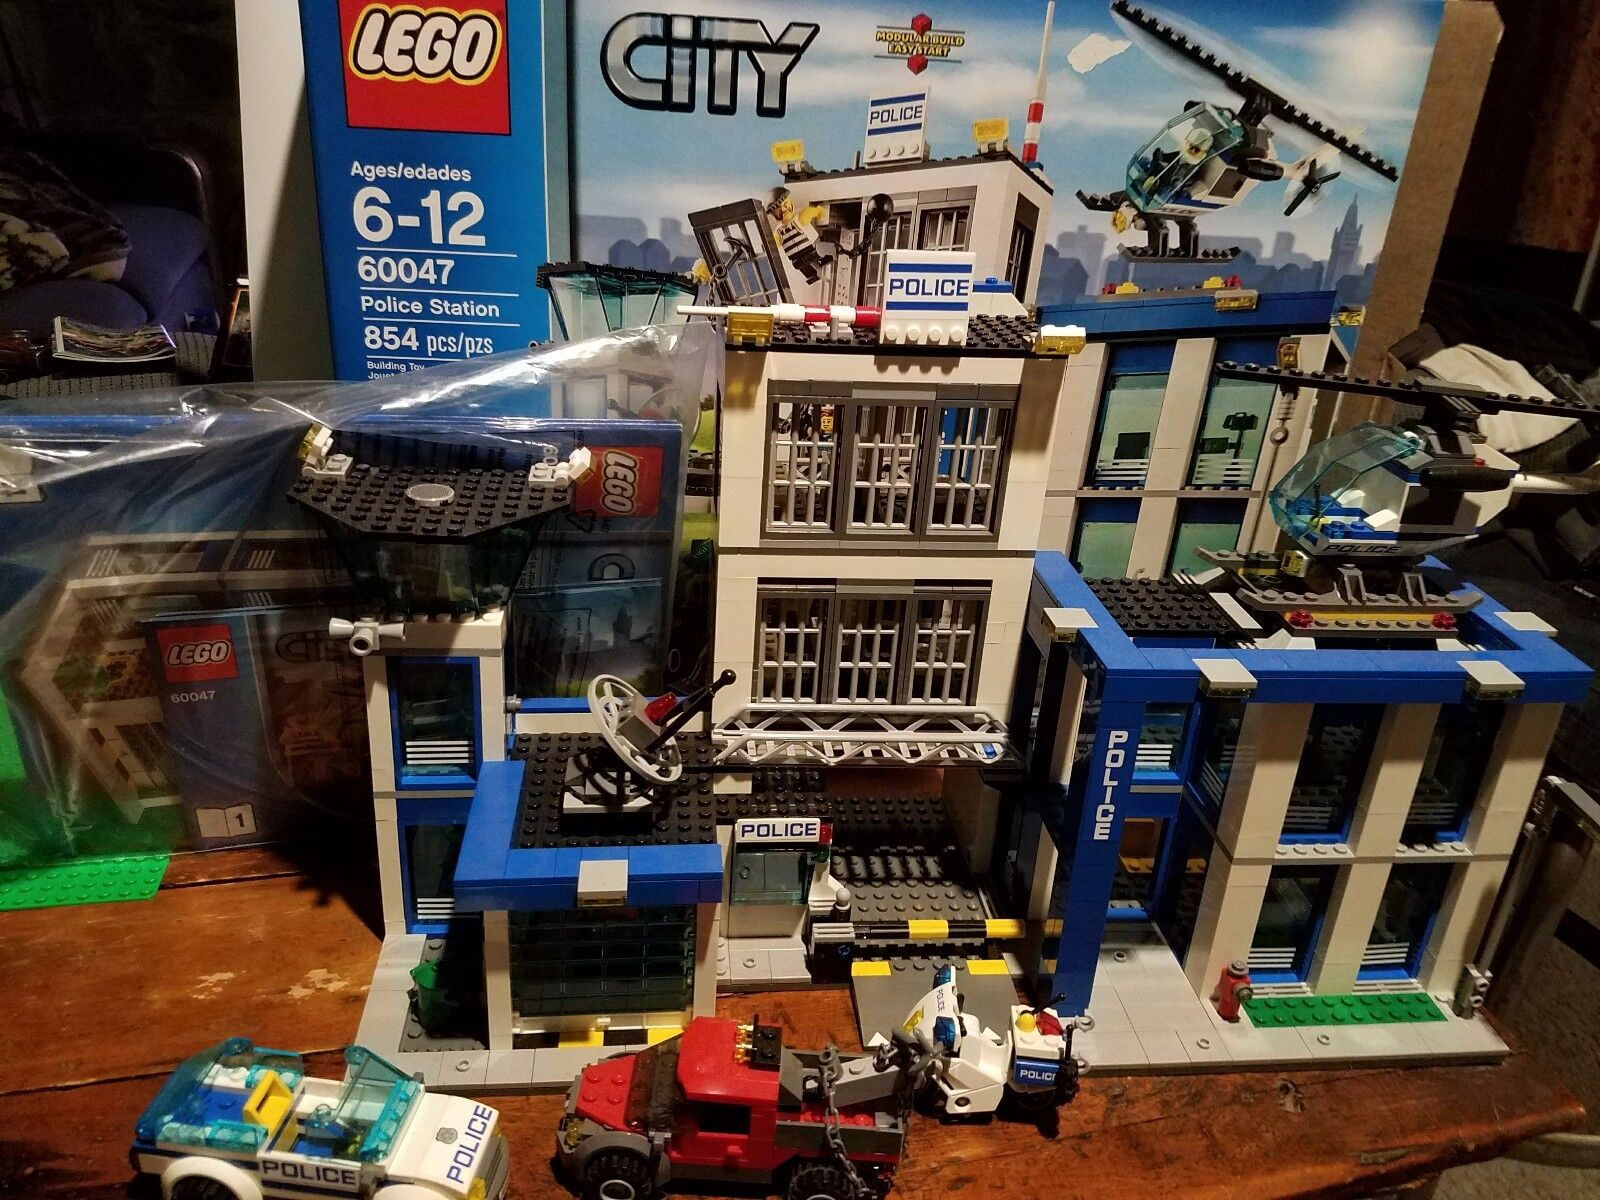 Lego city police station (60047) keine minifigures